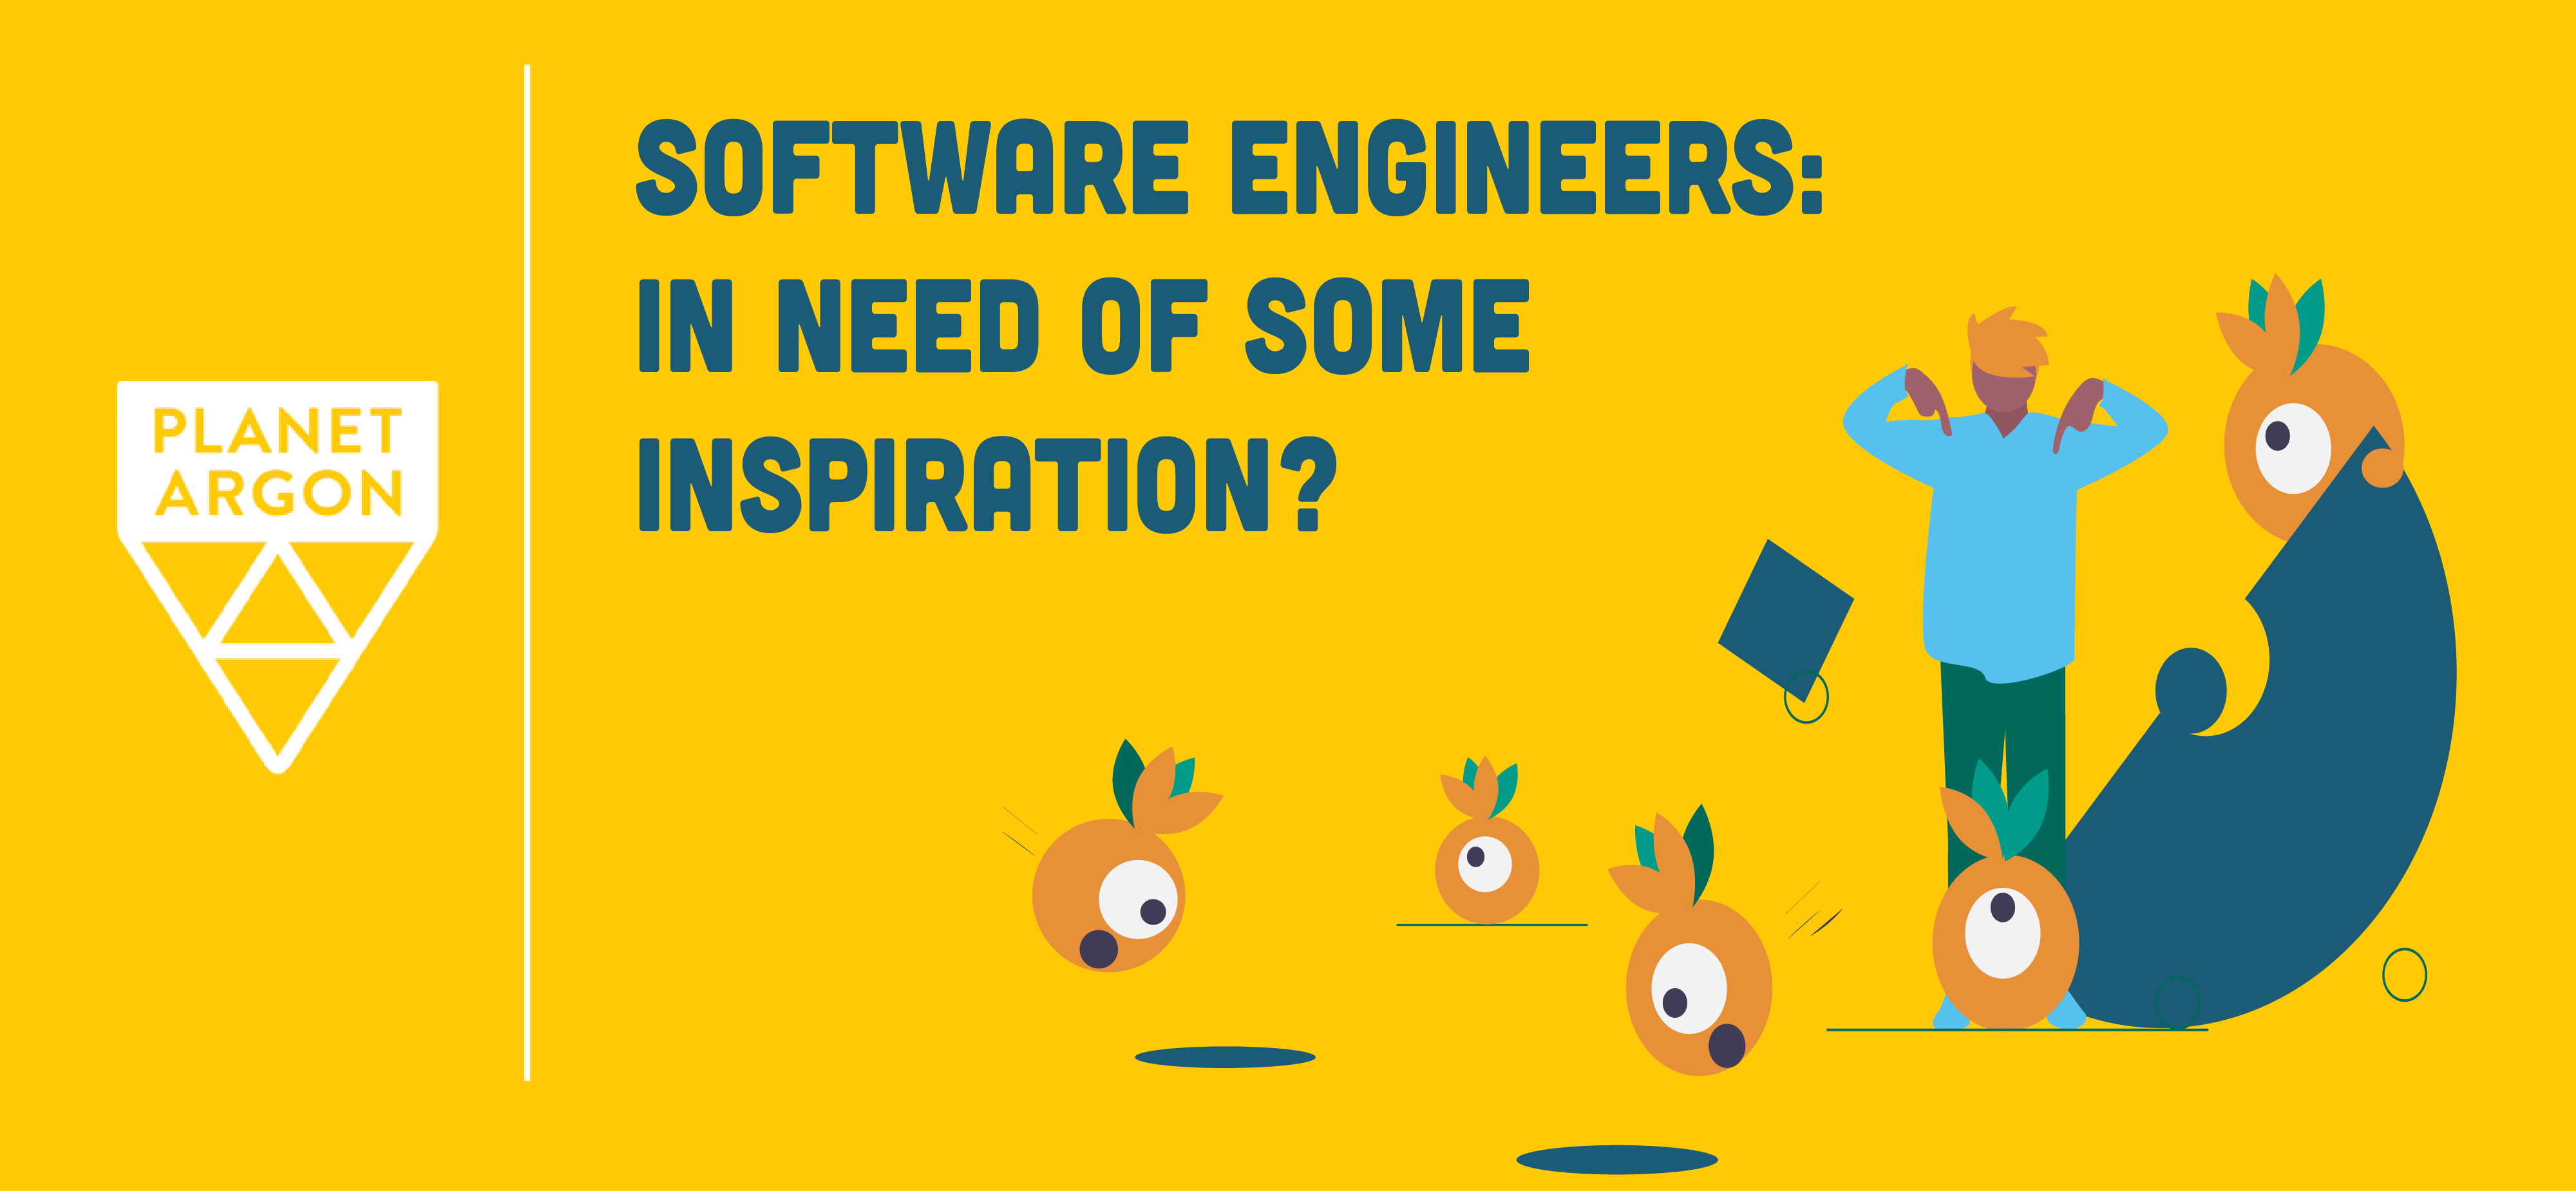 Software Engineers: In Need of Inspiration?